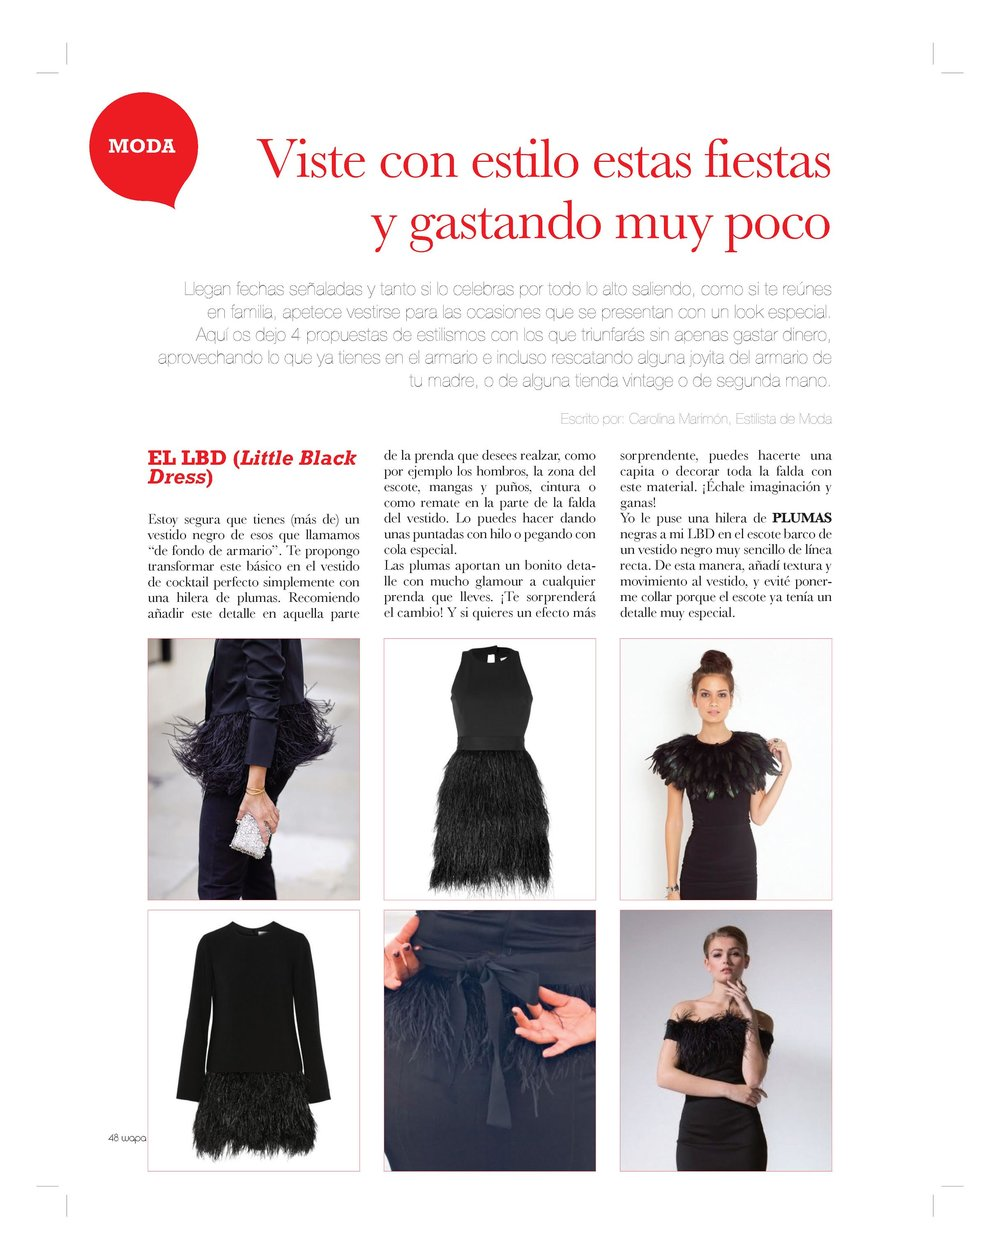 Wapa Magazine 51 – HOW TO LOOK STUNNING FOR CHRISTMAS PARTIES WITH NO BUDGET   (Winter 2015)